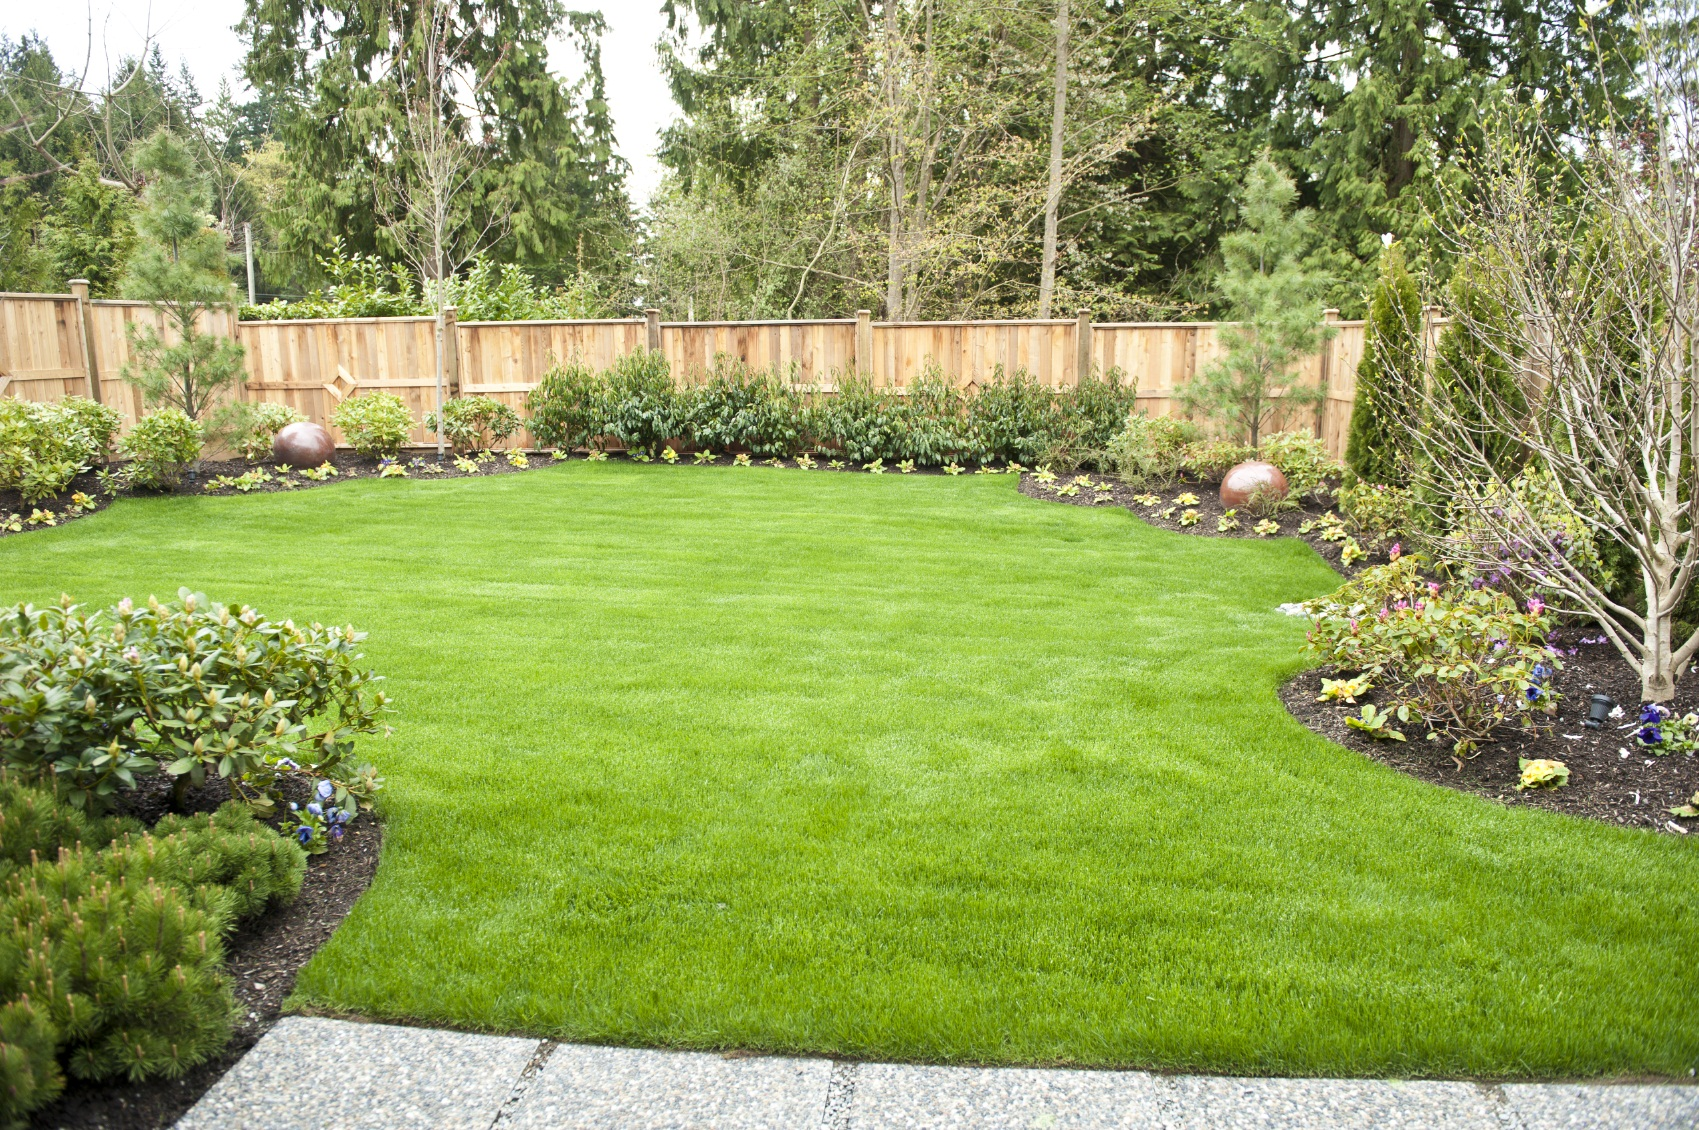 Garden in my backyard wordreference forums for Backyard landscape design ideas